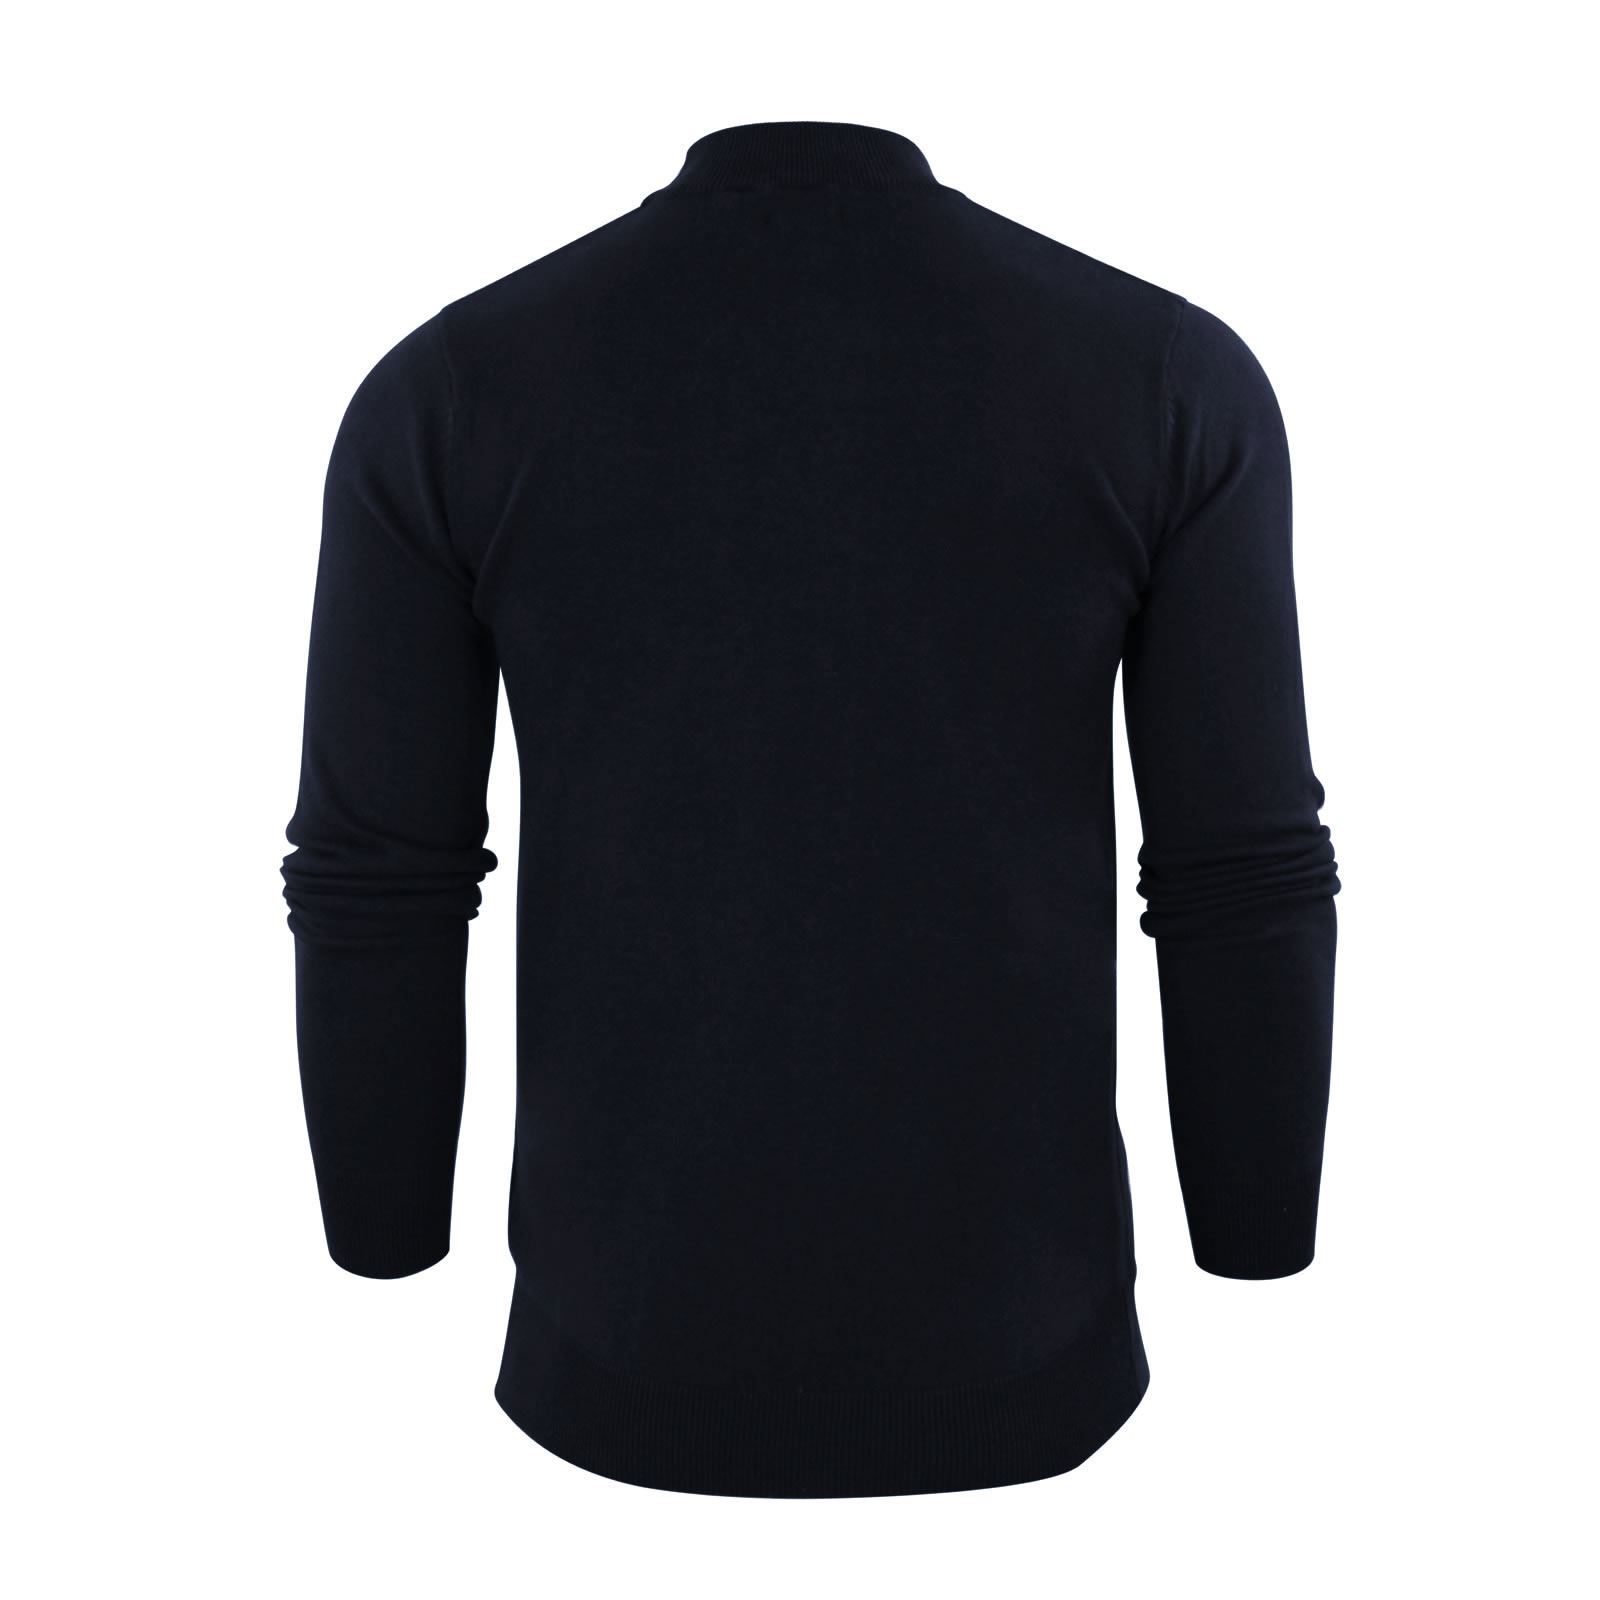 Mens-Jumper-Brave-Soul-Turtle-Neck-Cotton-Pull-Over-Sweater thumbnail 25